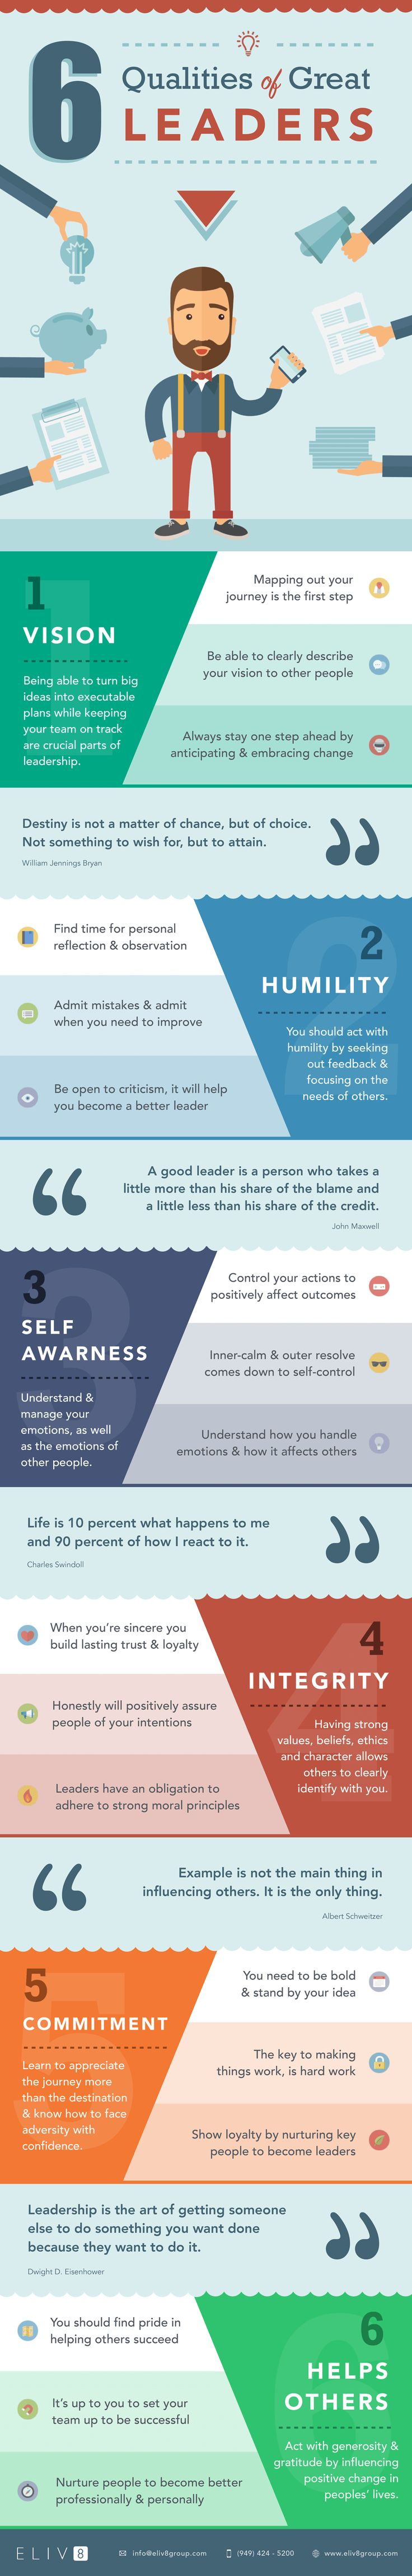 "If you've ever wondered: ""What are the more important leadership characteristics?"", ""Which leadership qualities & traits should I be focusing on?"", ""How can I become a better leader?"" Then Ï've just the thing for you... Learn about the 6 most important leadership characteristics and qualities with this helpful ingographic - includes powerdul leadership quotes and advice. #infographic"